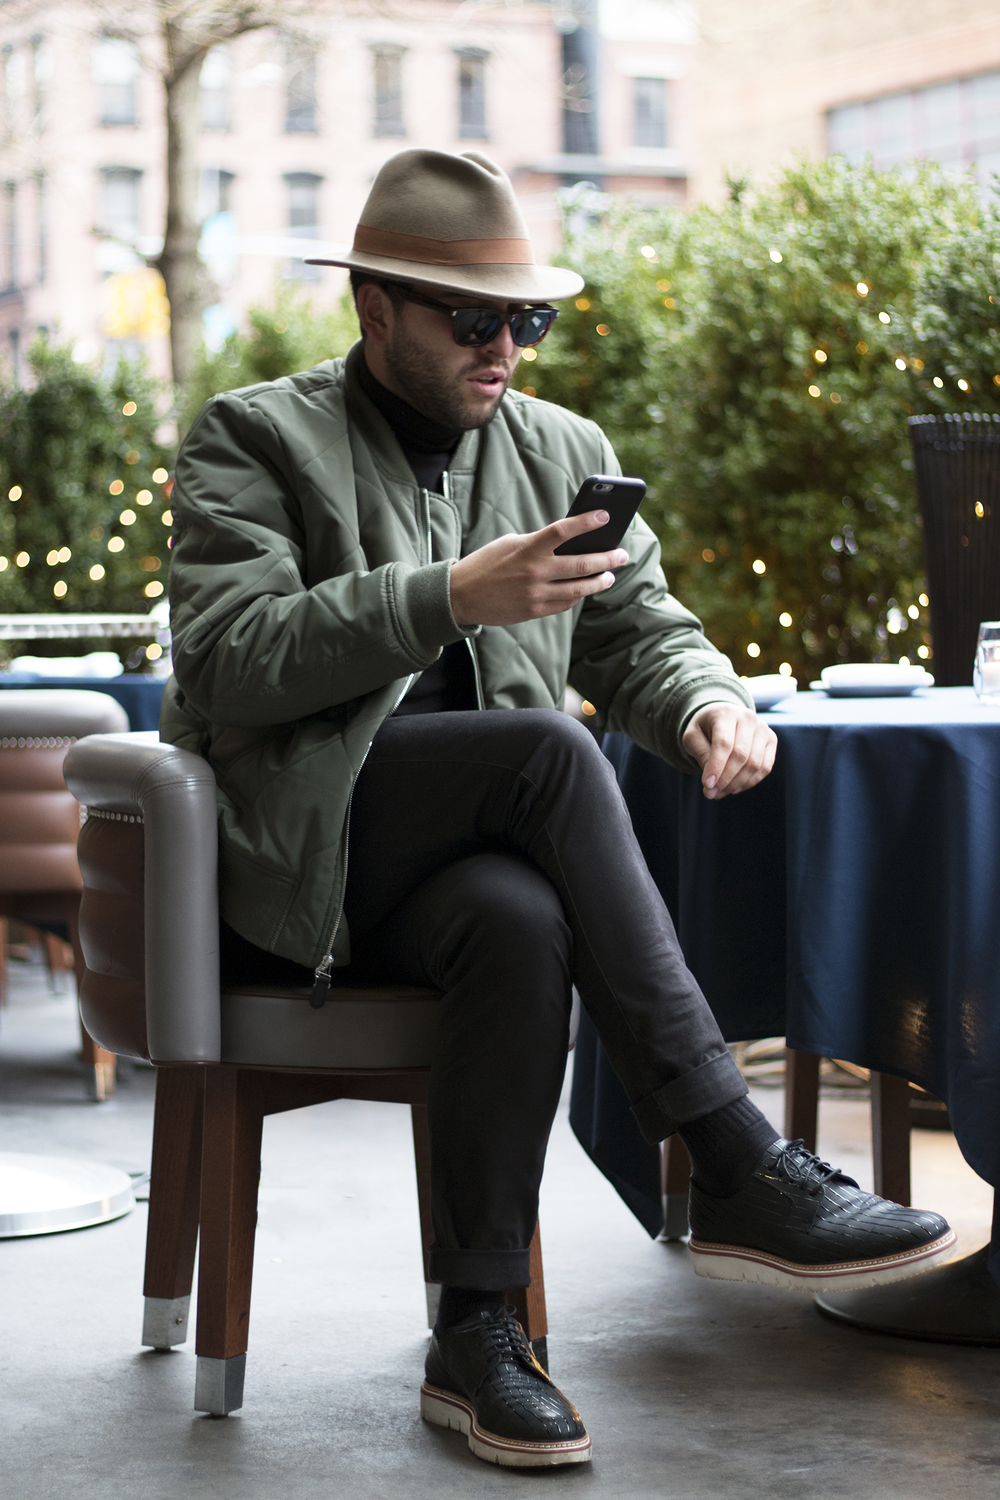 Pensively, awaiting the arrival of an Uber. Jacket: 7 For All Mankind/ Hat: Rag & Bone / Shoes: Jimmy Choo